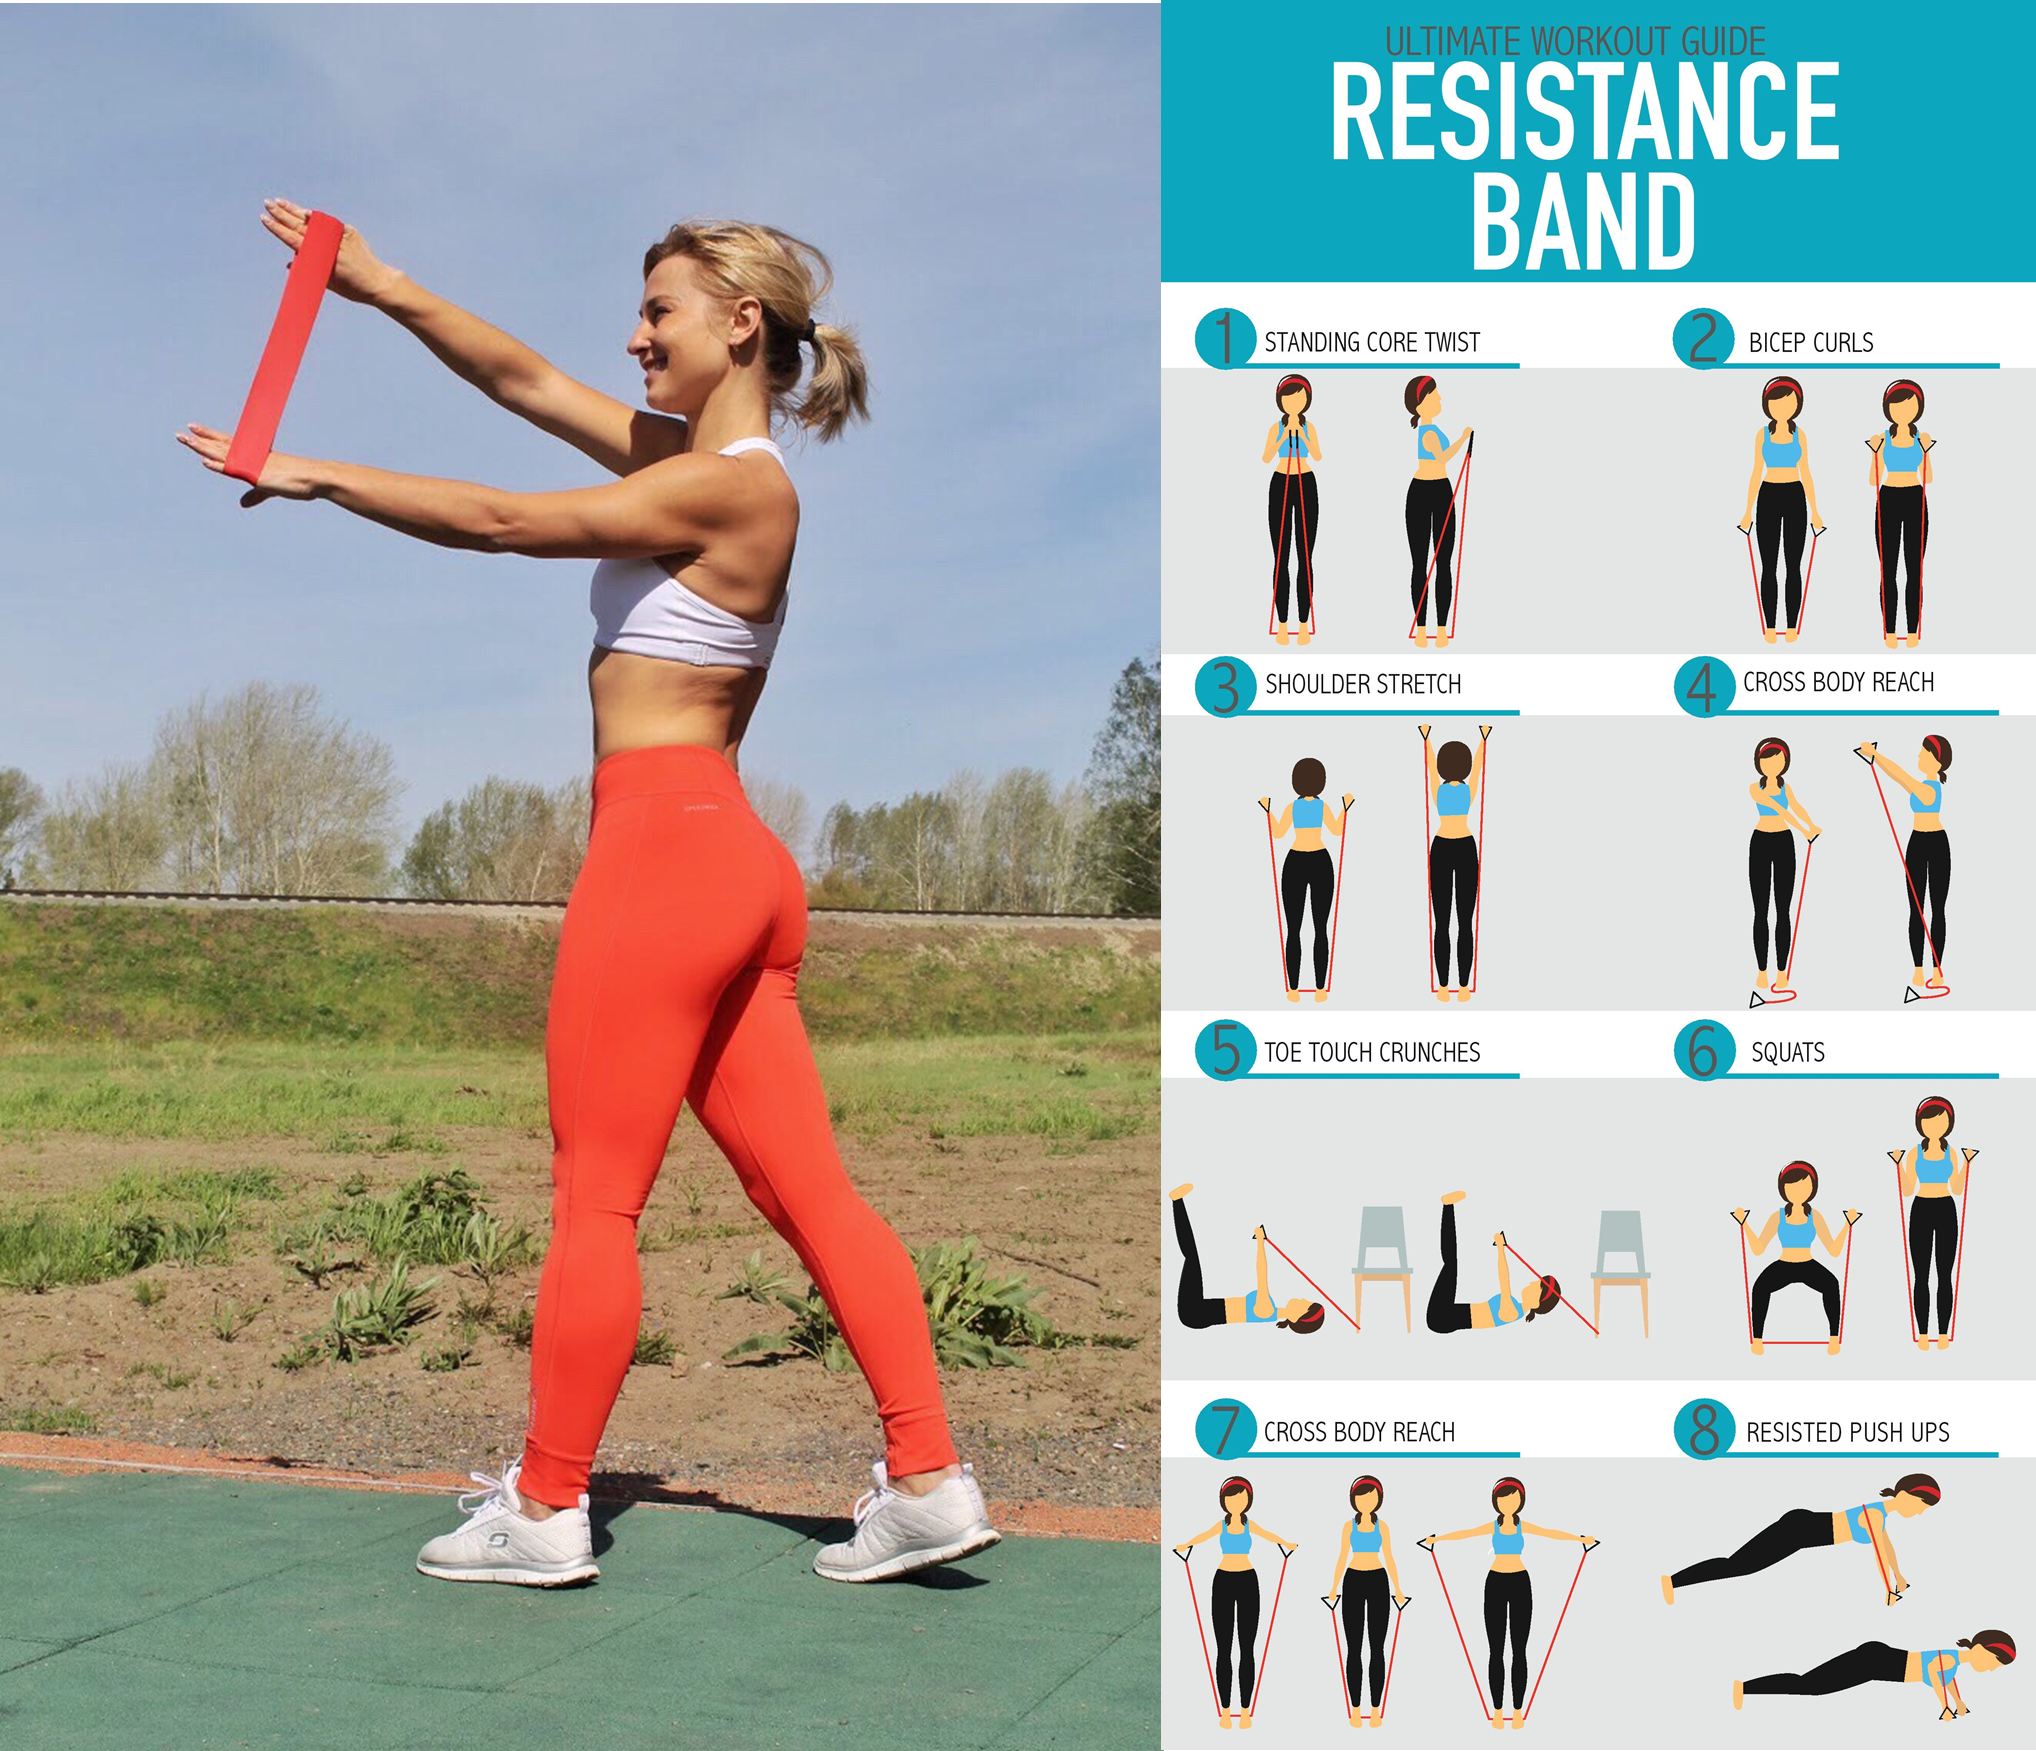 936bbd334 Follow this workout and do it with resistance bands for the best results       resistancebands  workouts  glutes  arms  thighs  fitgirl  fitness   ...